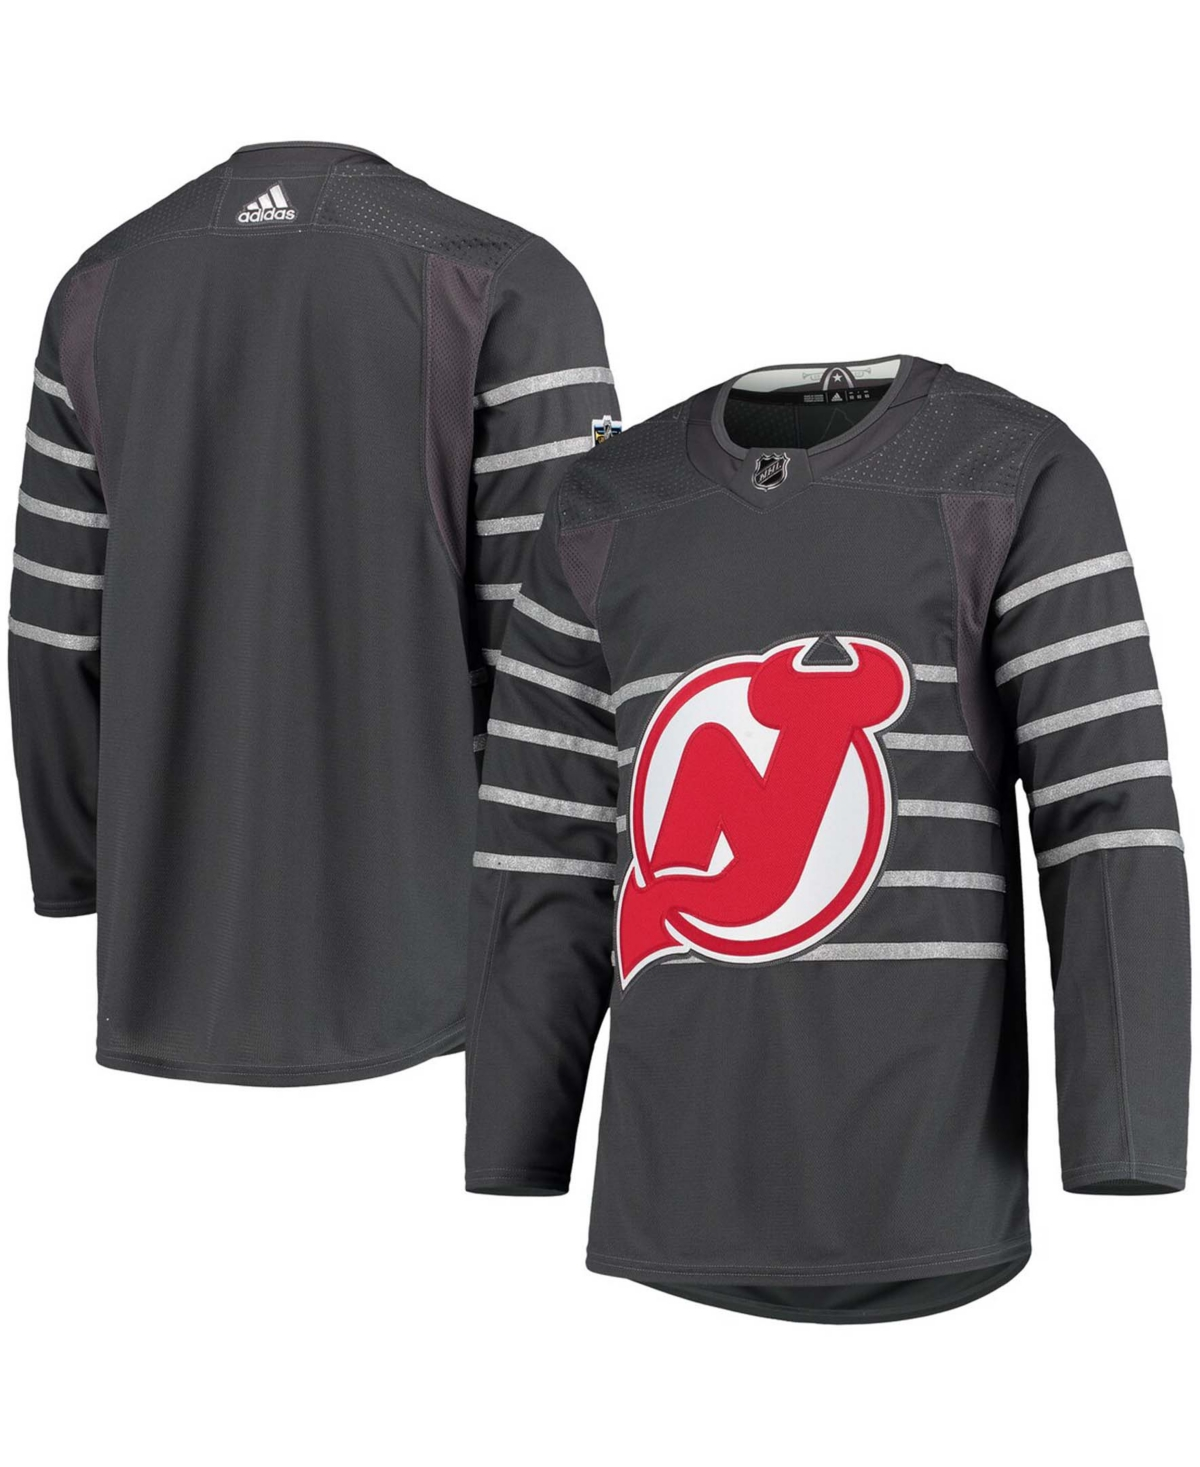 Men's Gray New Jersey Devils All-Star Authentic Jersey